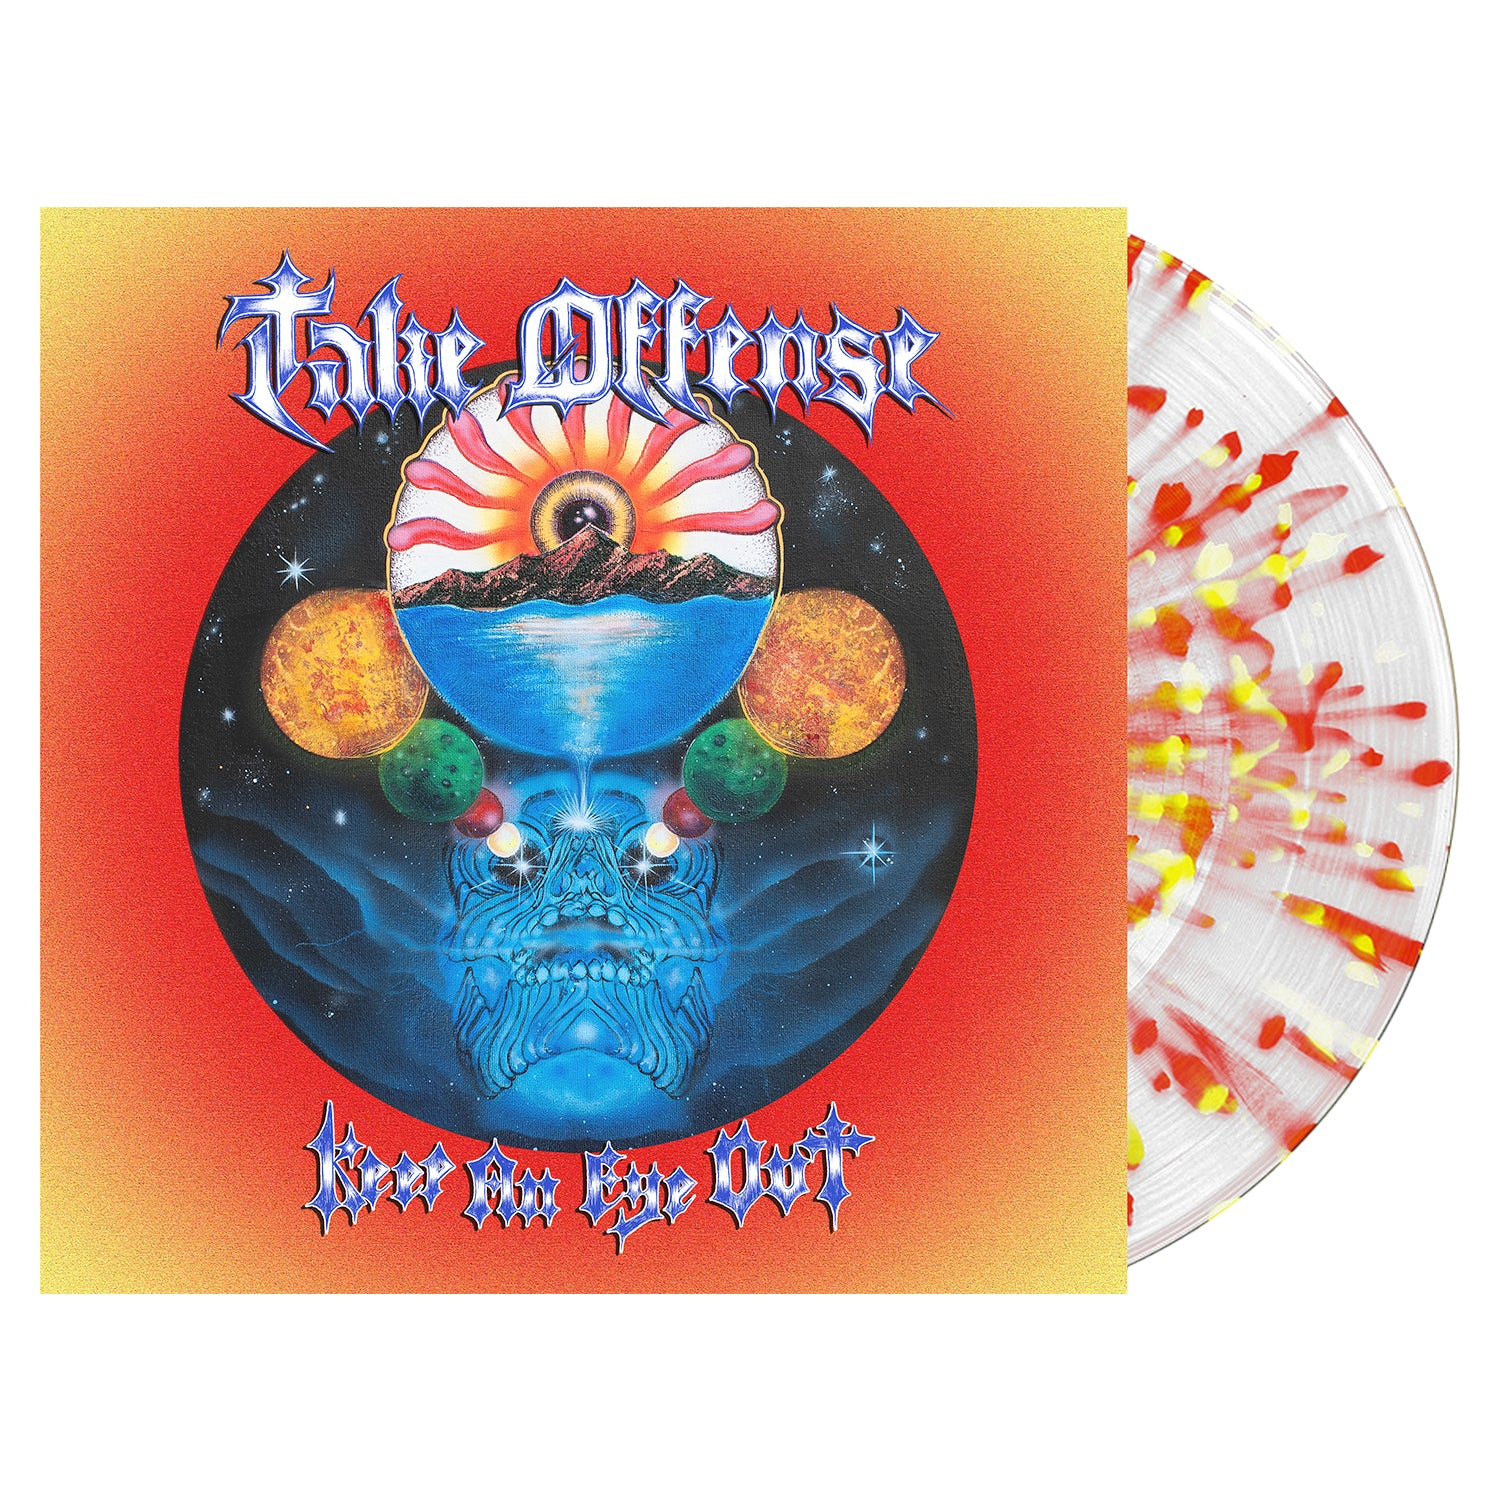 Take Offense 'Keep An Eye Out' Various LP - Clear w/ Heavy Blood Red & Yellow Splatter